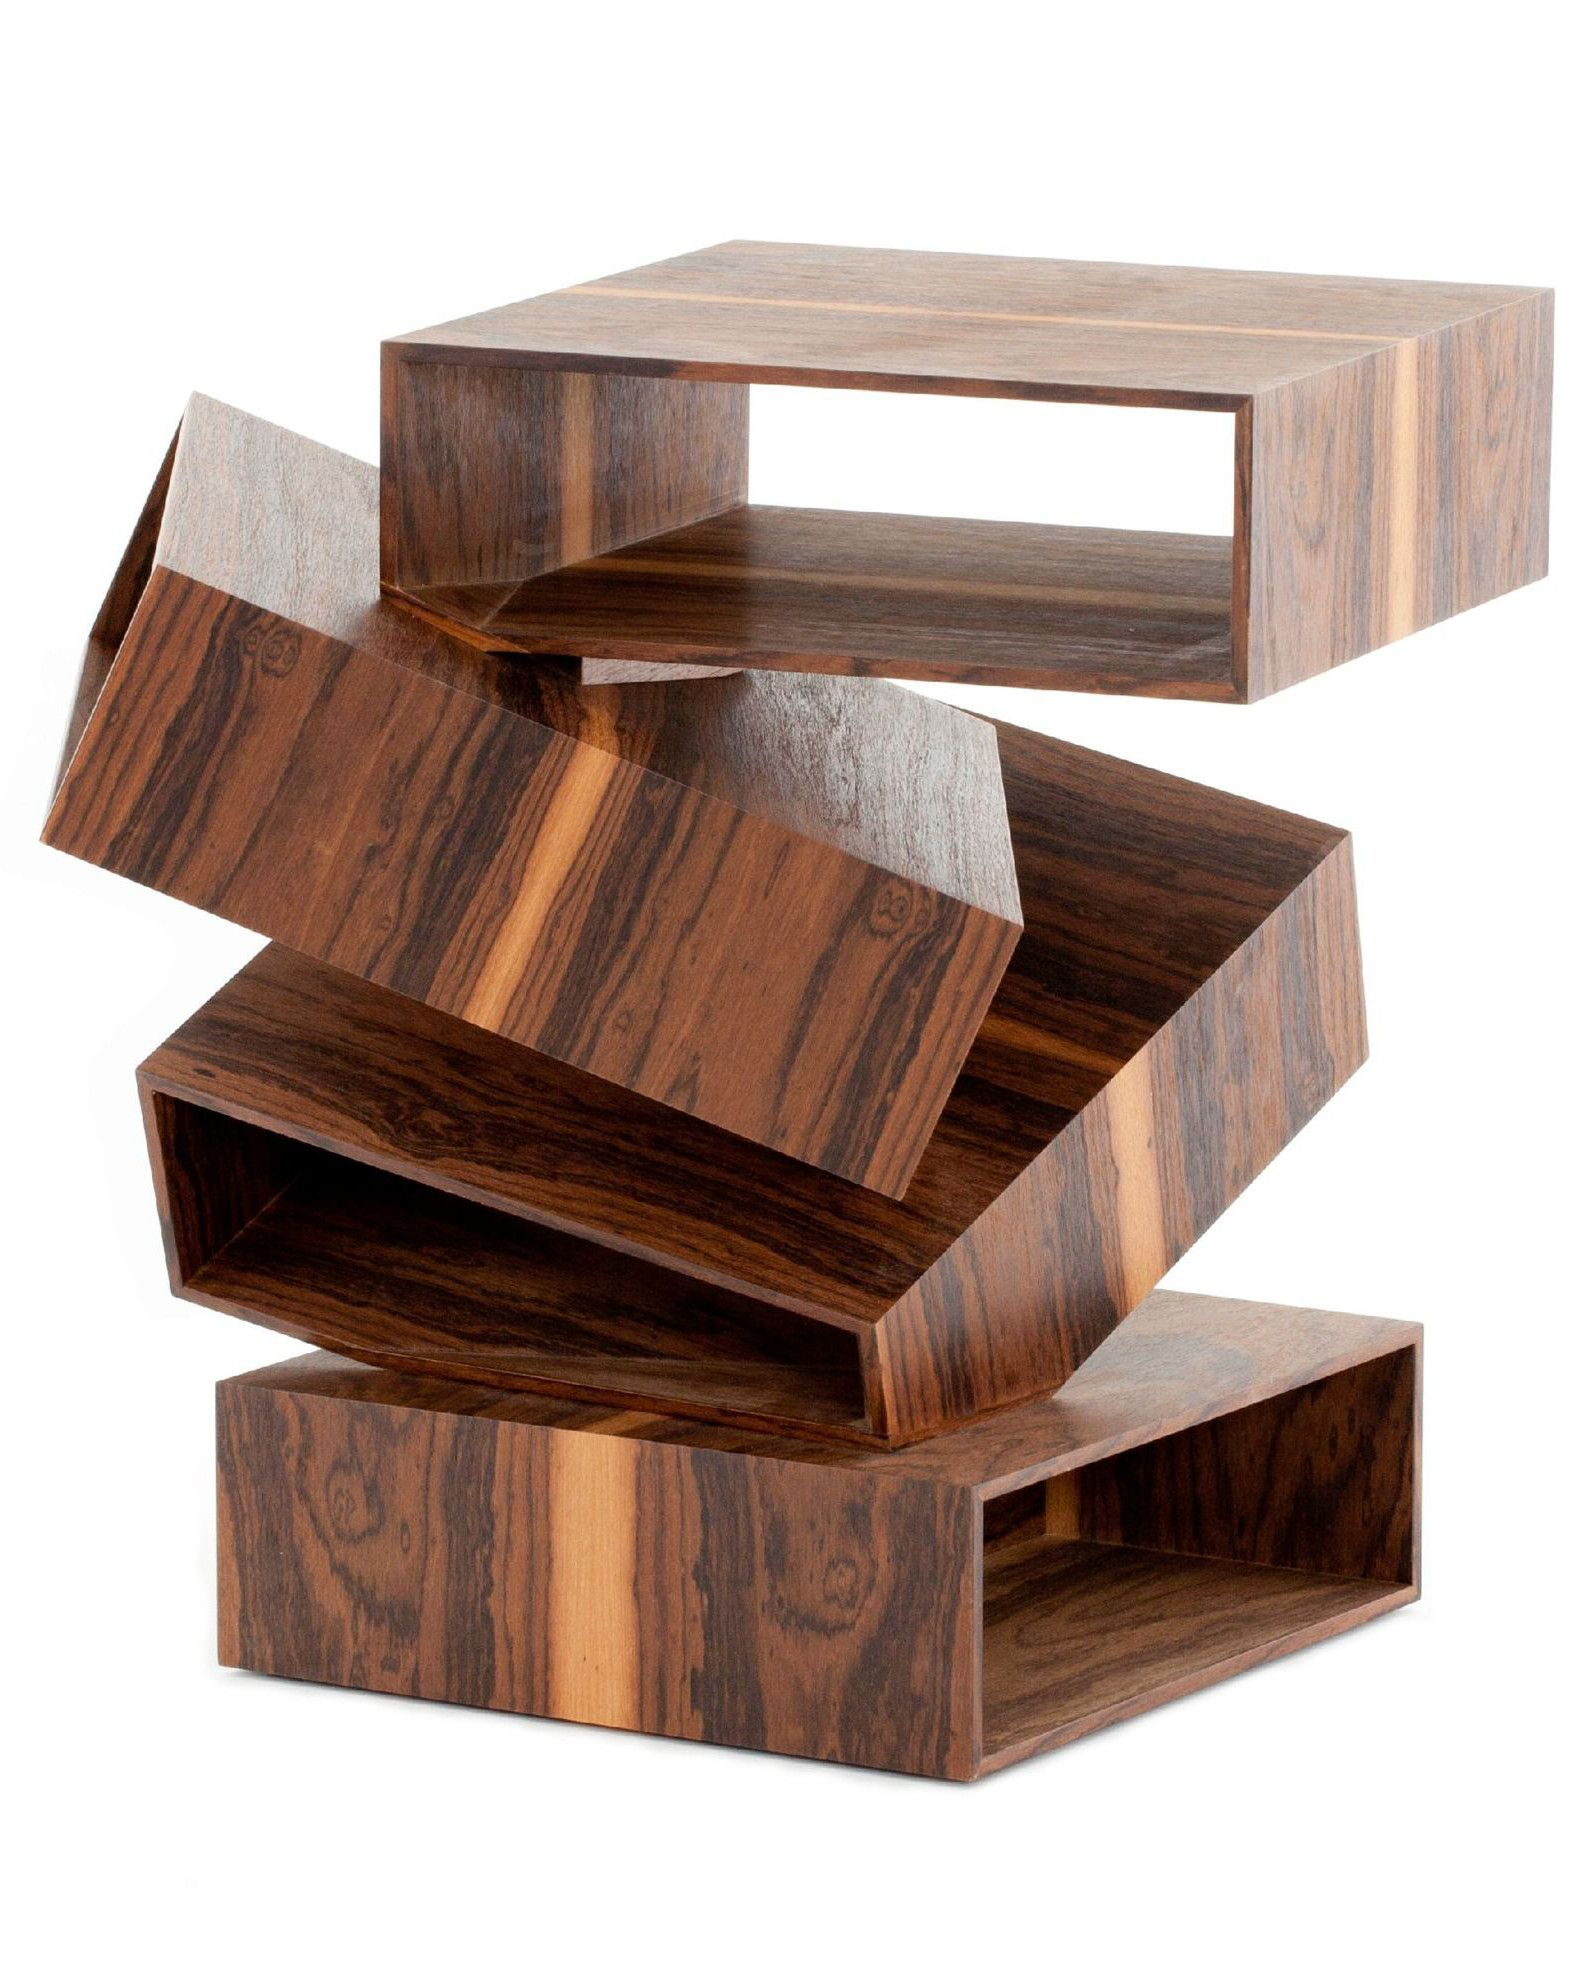 Solid wood coffee table BALANCING BOXES Porro